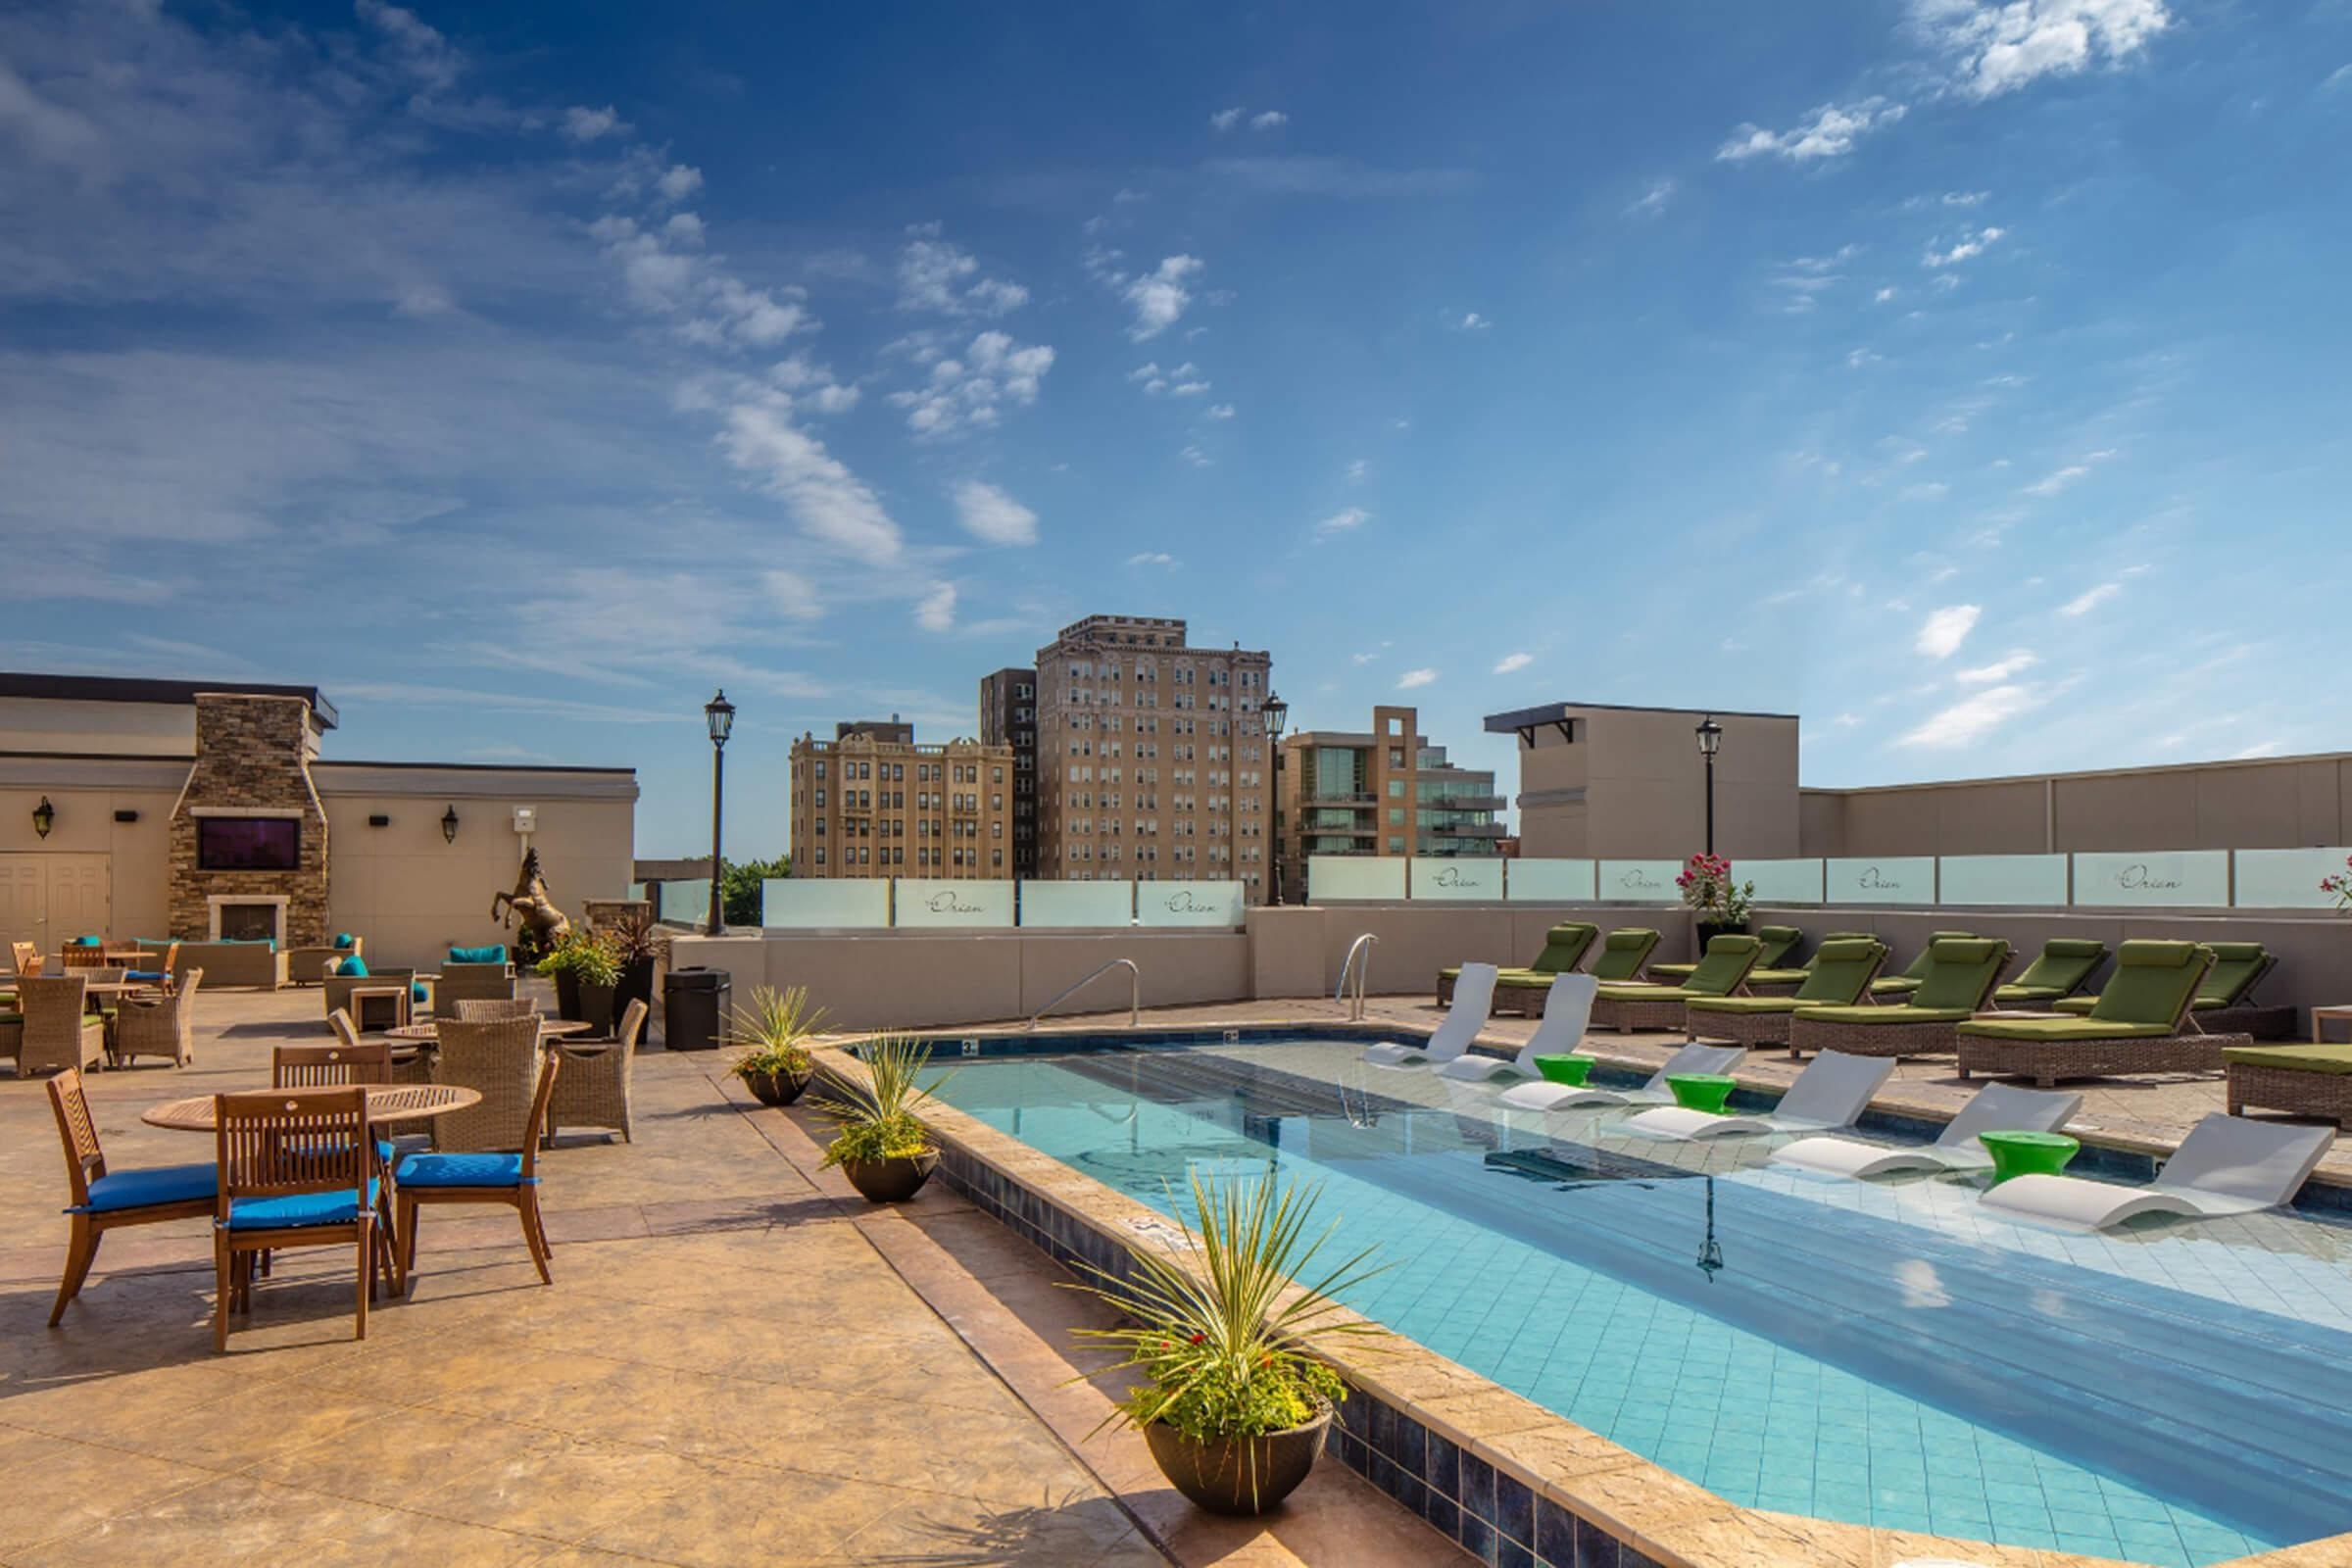 The Orion Apartments in Central West End - St. Louis, MO - Rooftop Swimming Pool 01 (1280x853).jpg